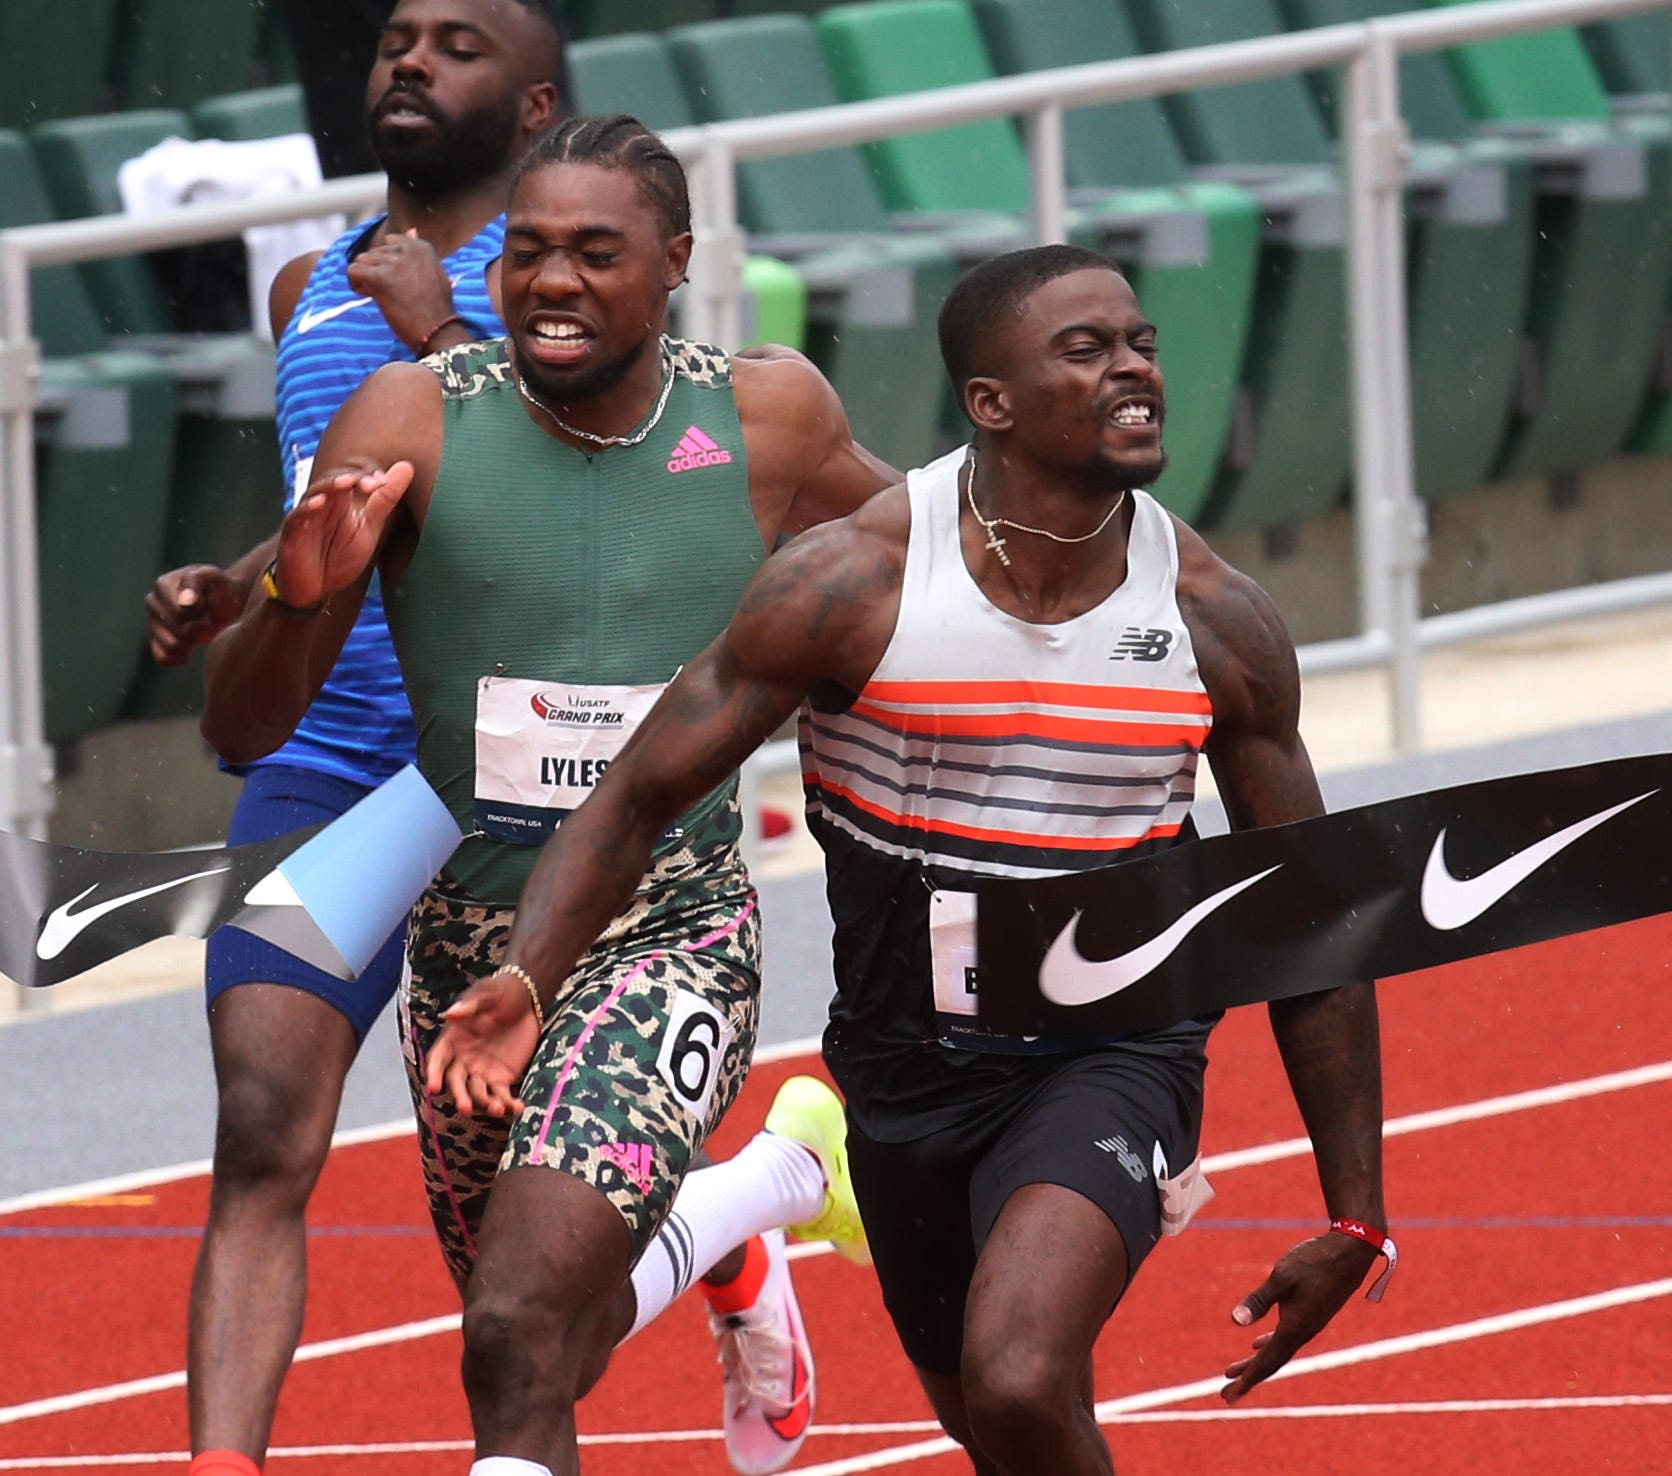 'Faith is measured in patience': The remarkable resurgence of US sprinter Trayvon Bromell